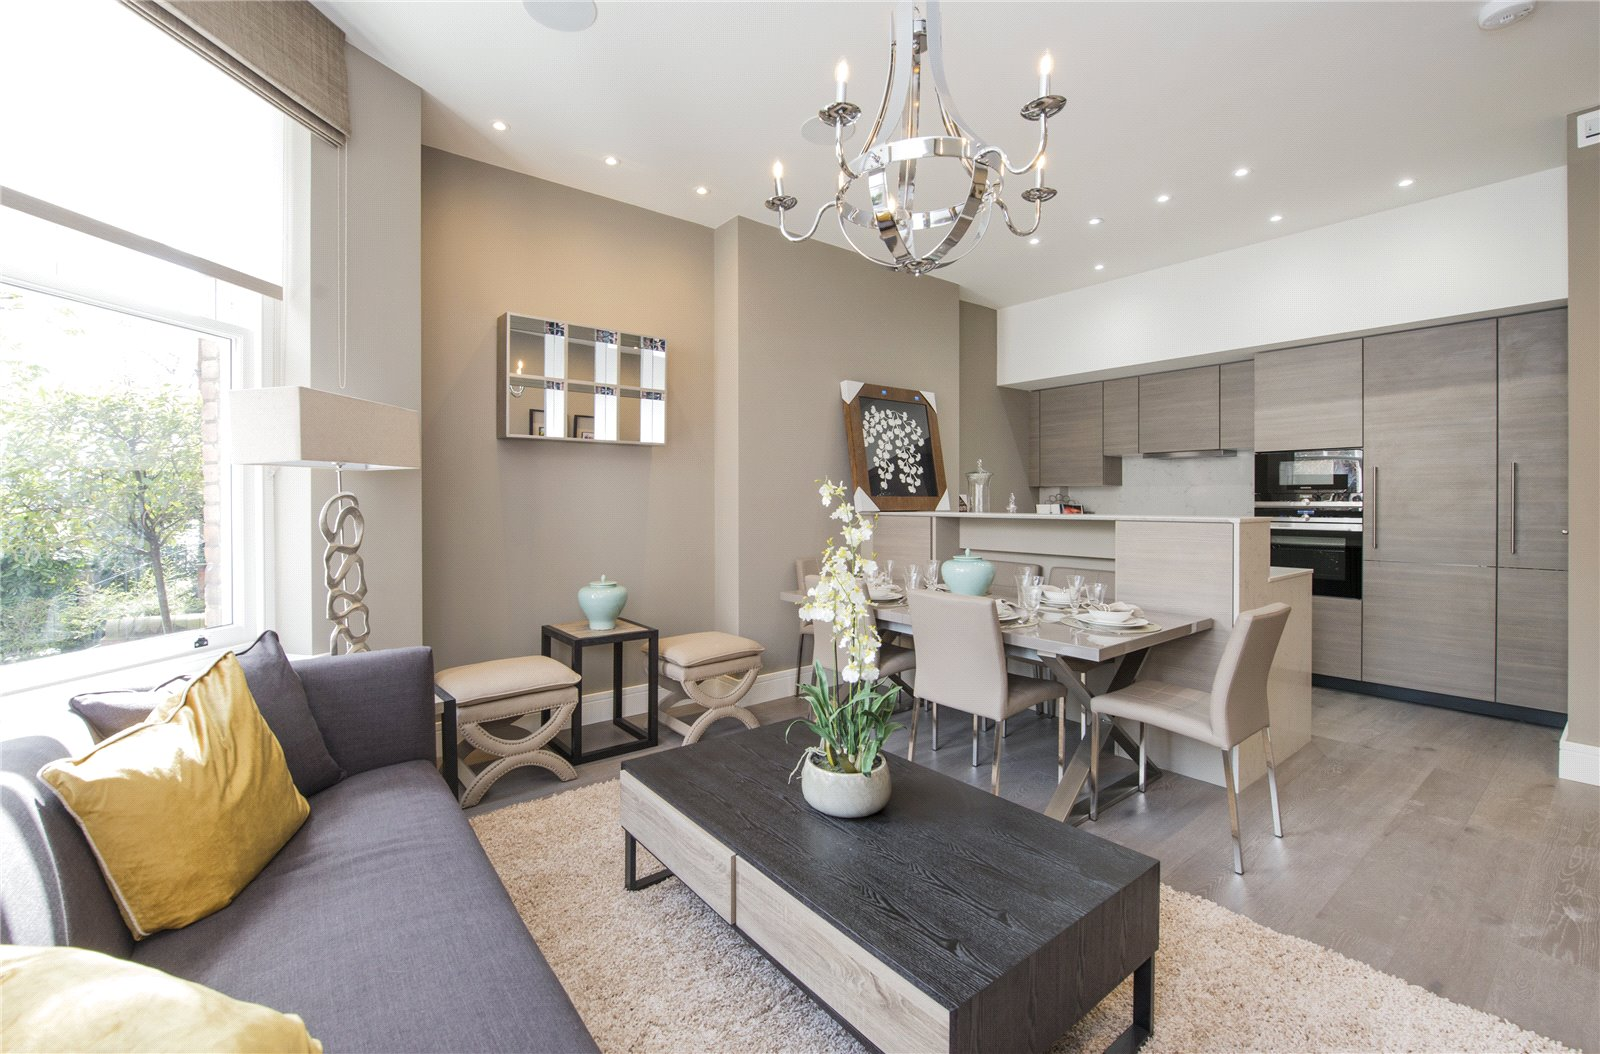 Apartment for Rent at Fitzjohns Avenue, Hampstead, London, NW3 Fitzjohns Avenue, Hampstead, London, NW3